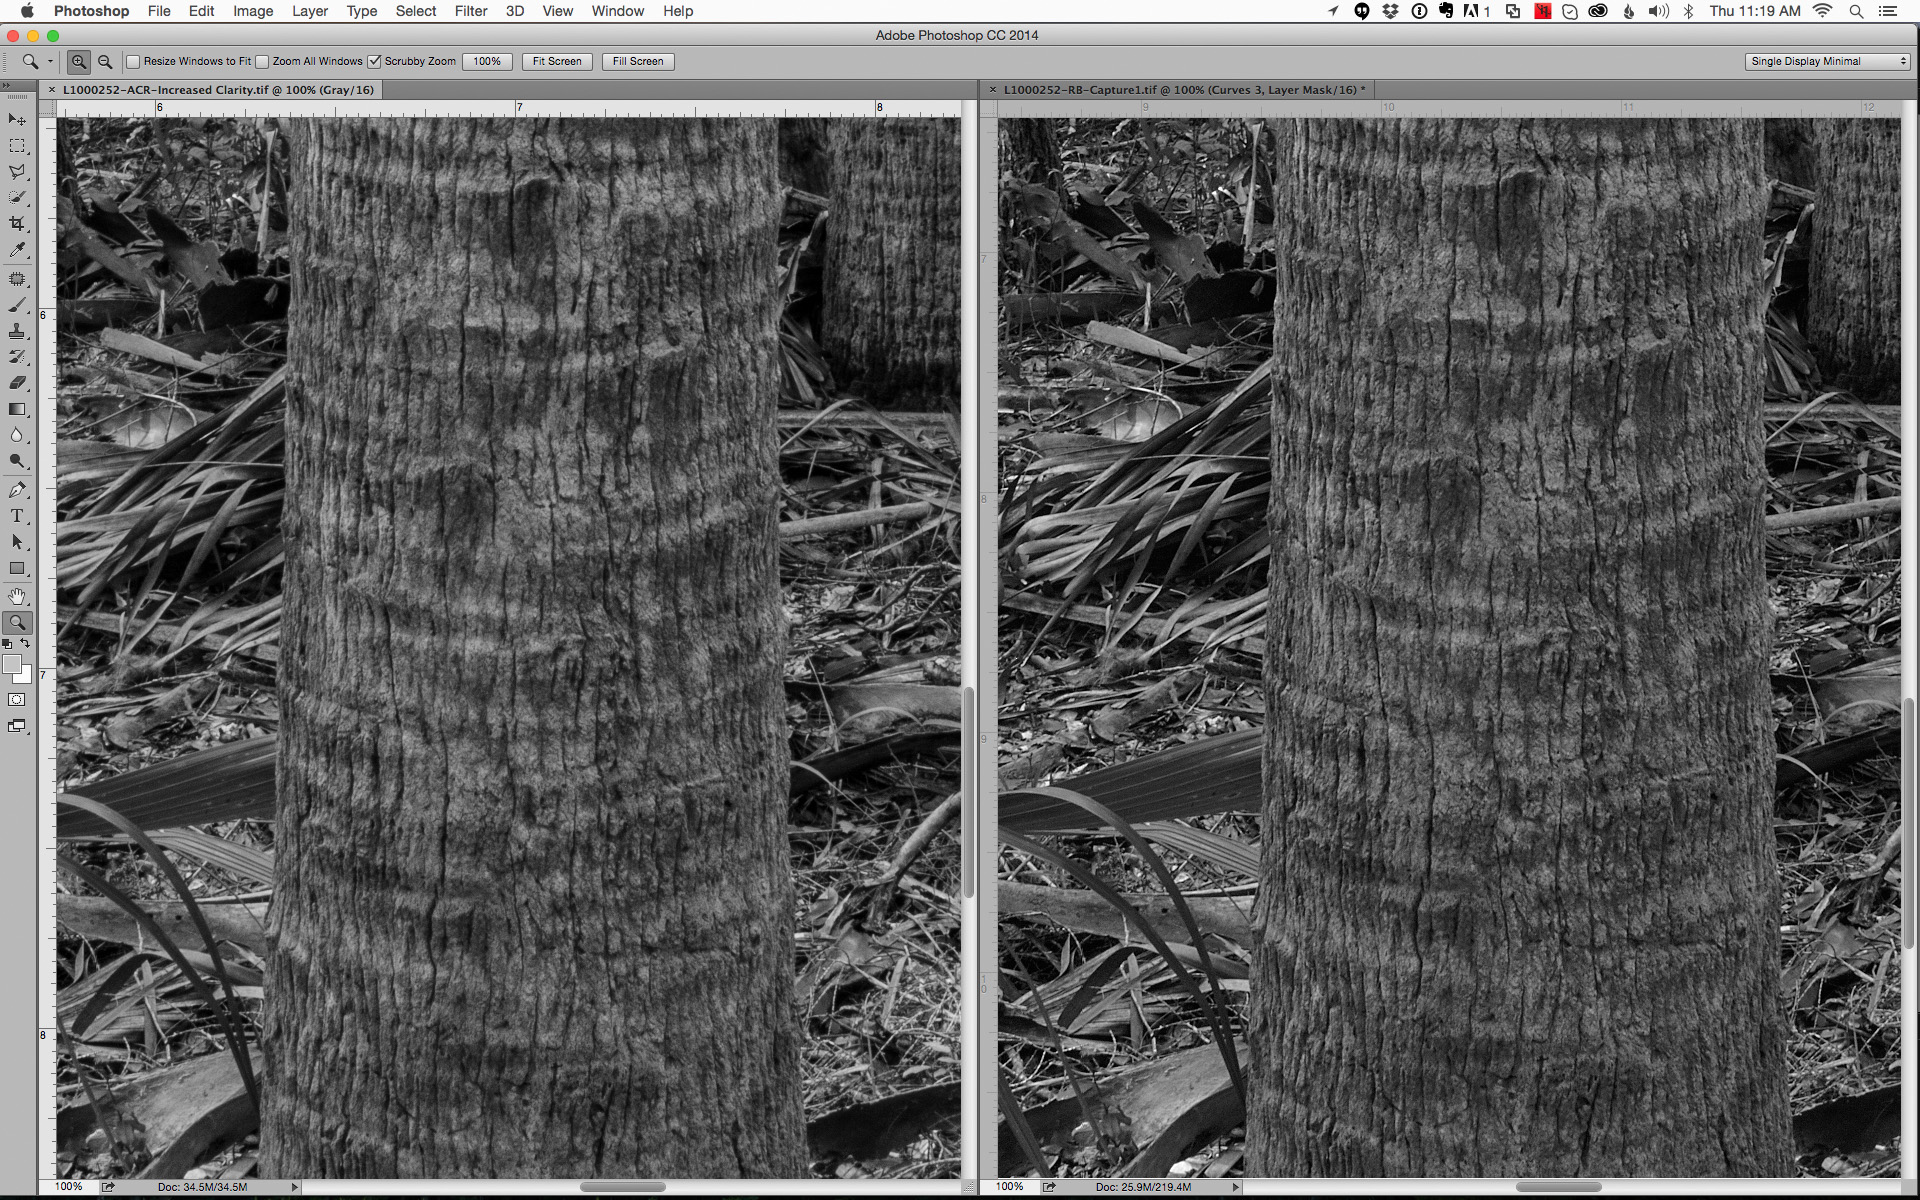 Adobe Camera Raw on left and Capture 1 Pro 8 on right at 100% pixel view